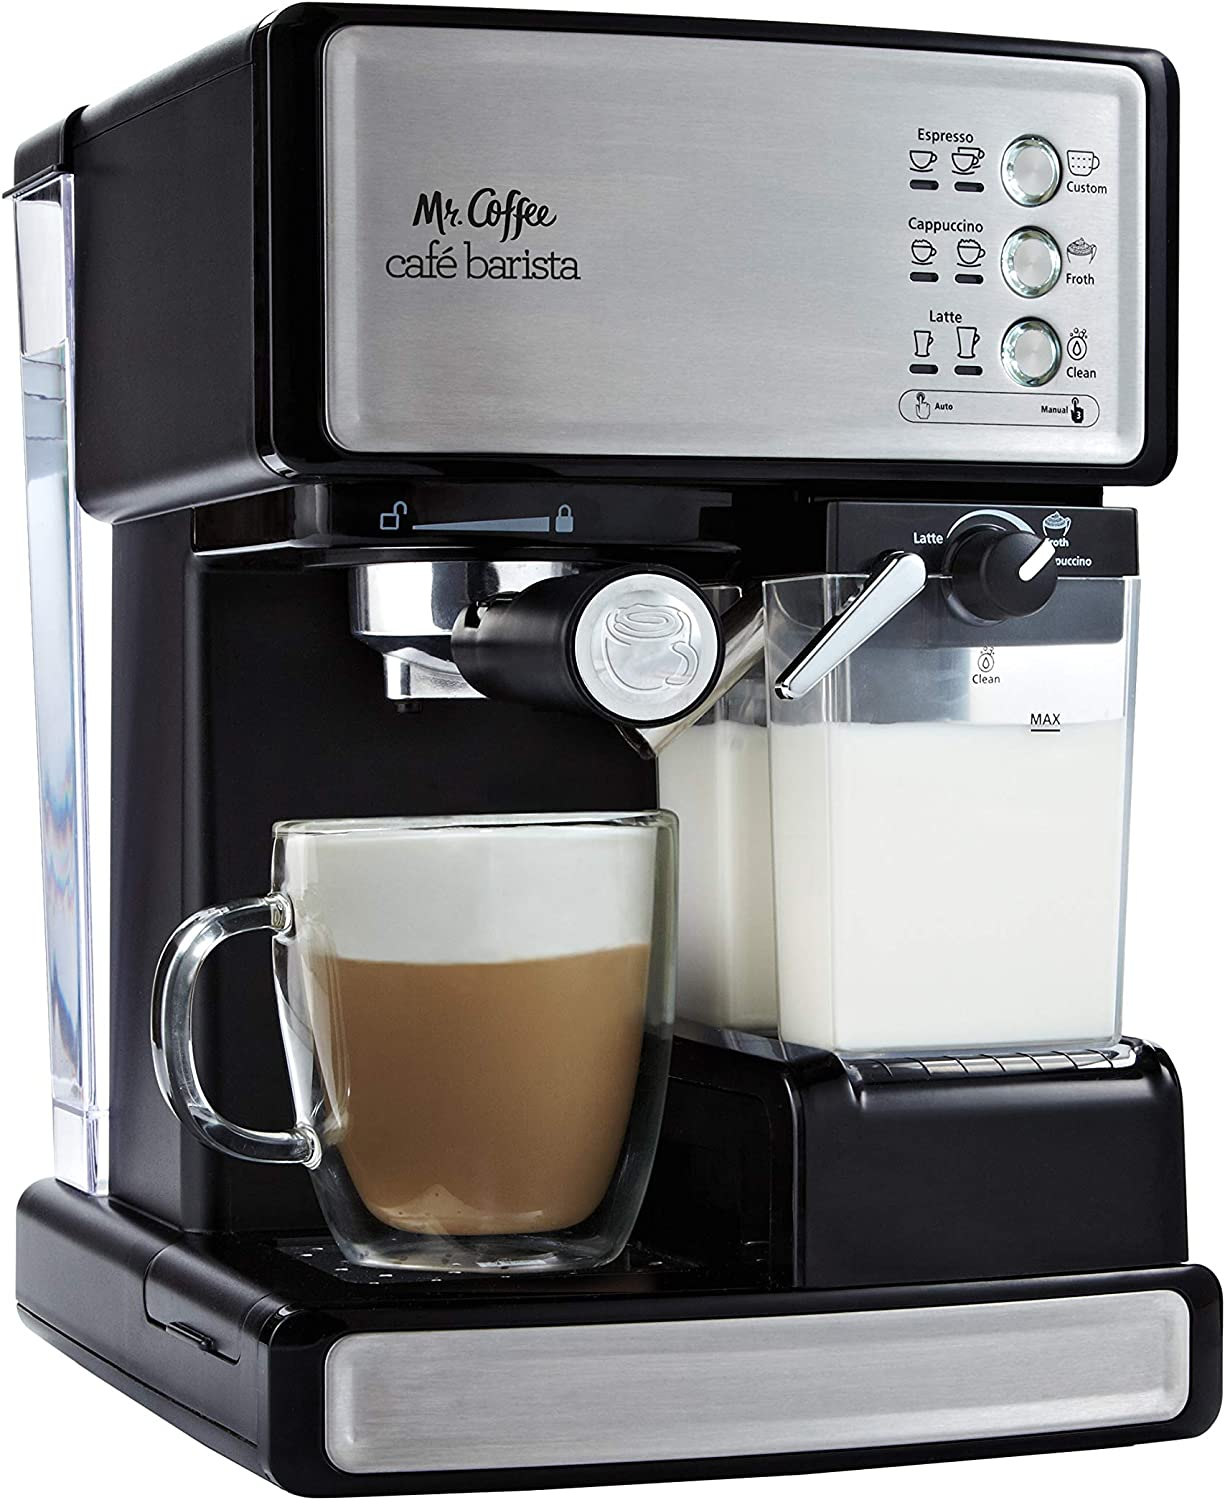 The Best Espresso Machine for Mom - 2021 Ratings & Reviews 4